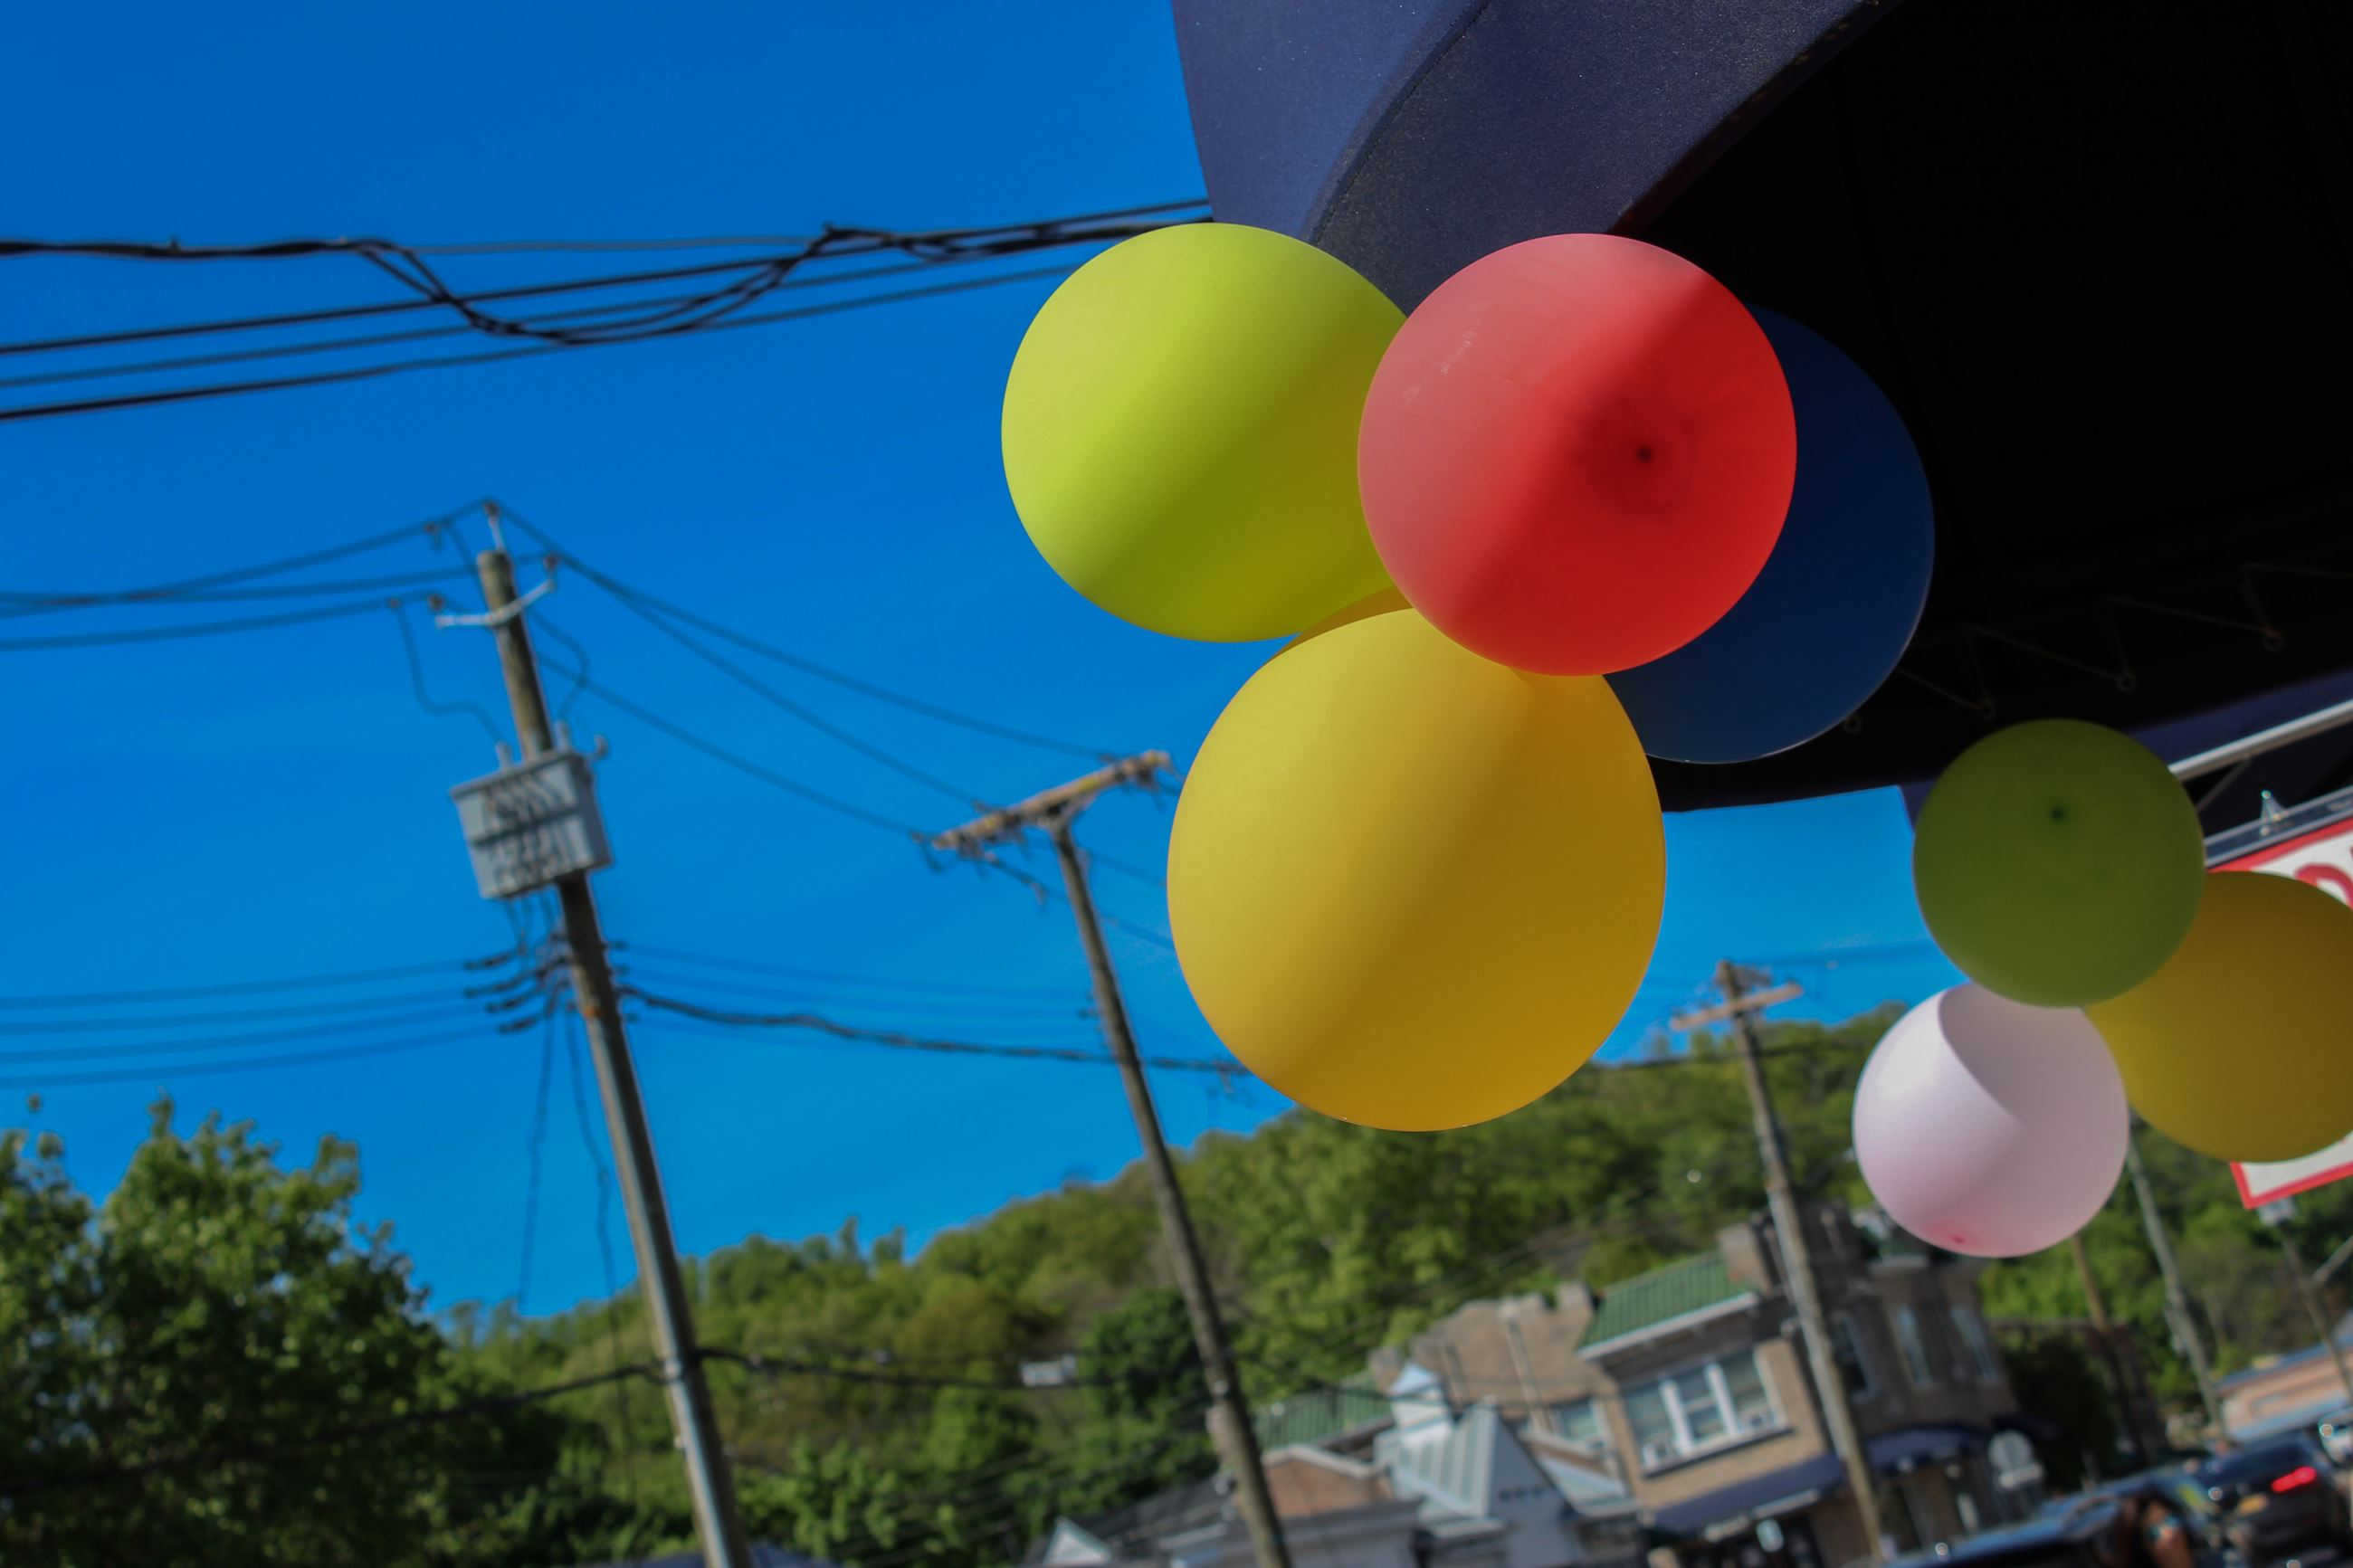 Balloons on storefront with blue sky